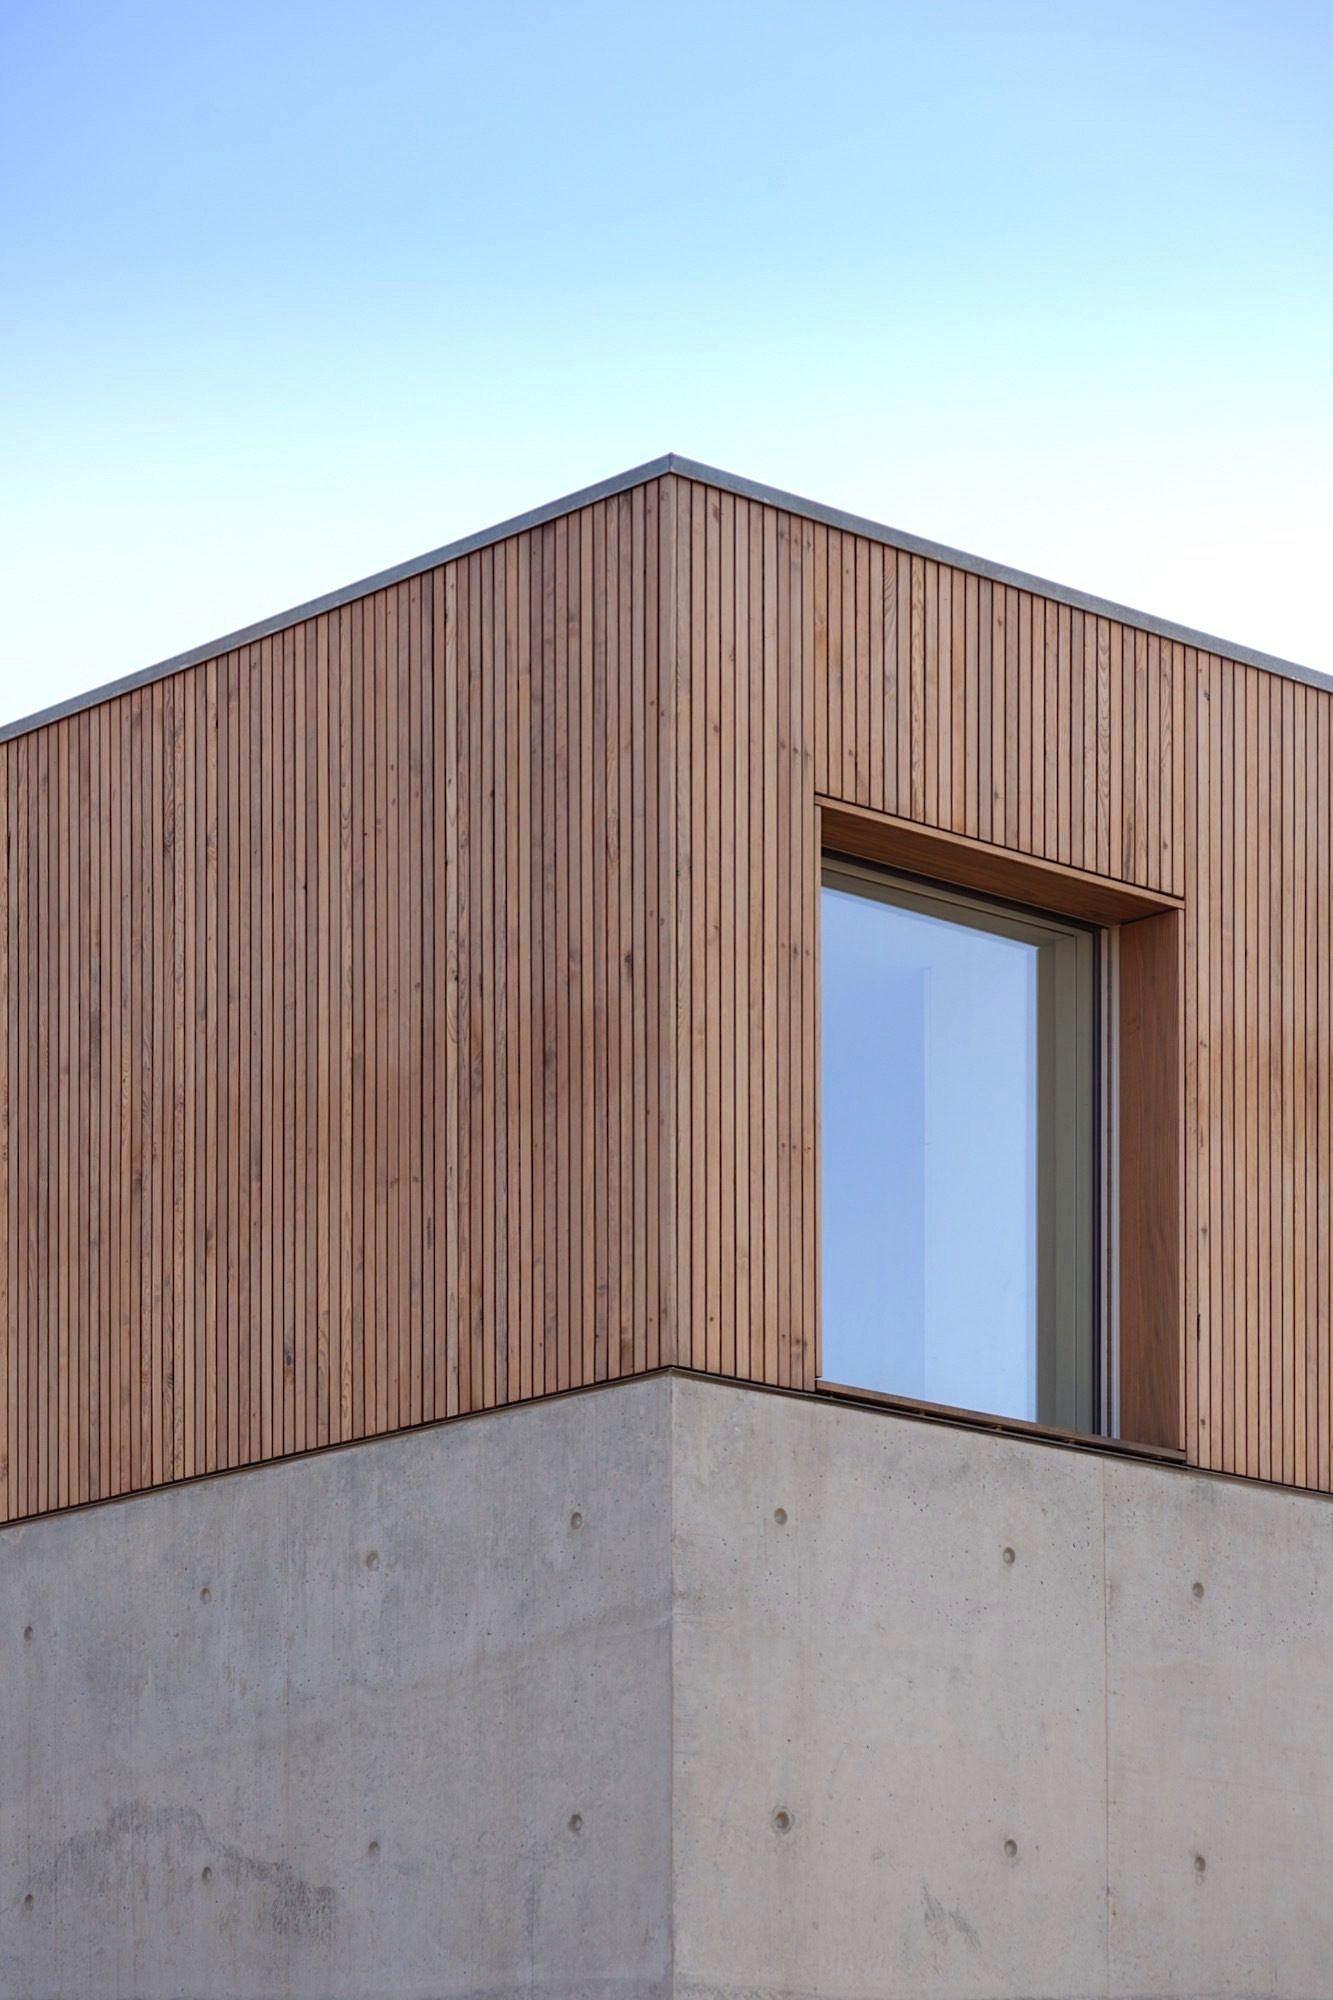 Wood   Concrete   Facade   Architecture Detail